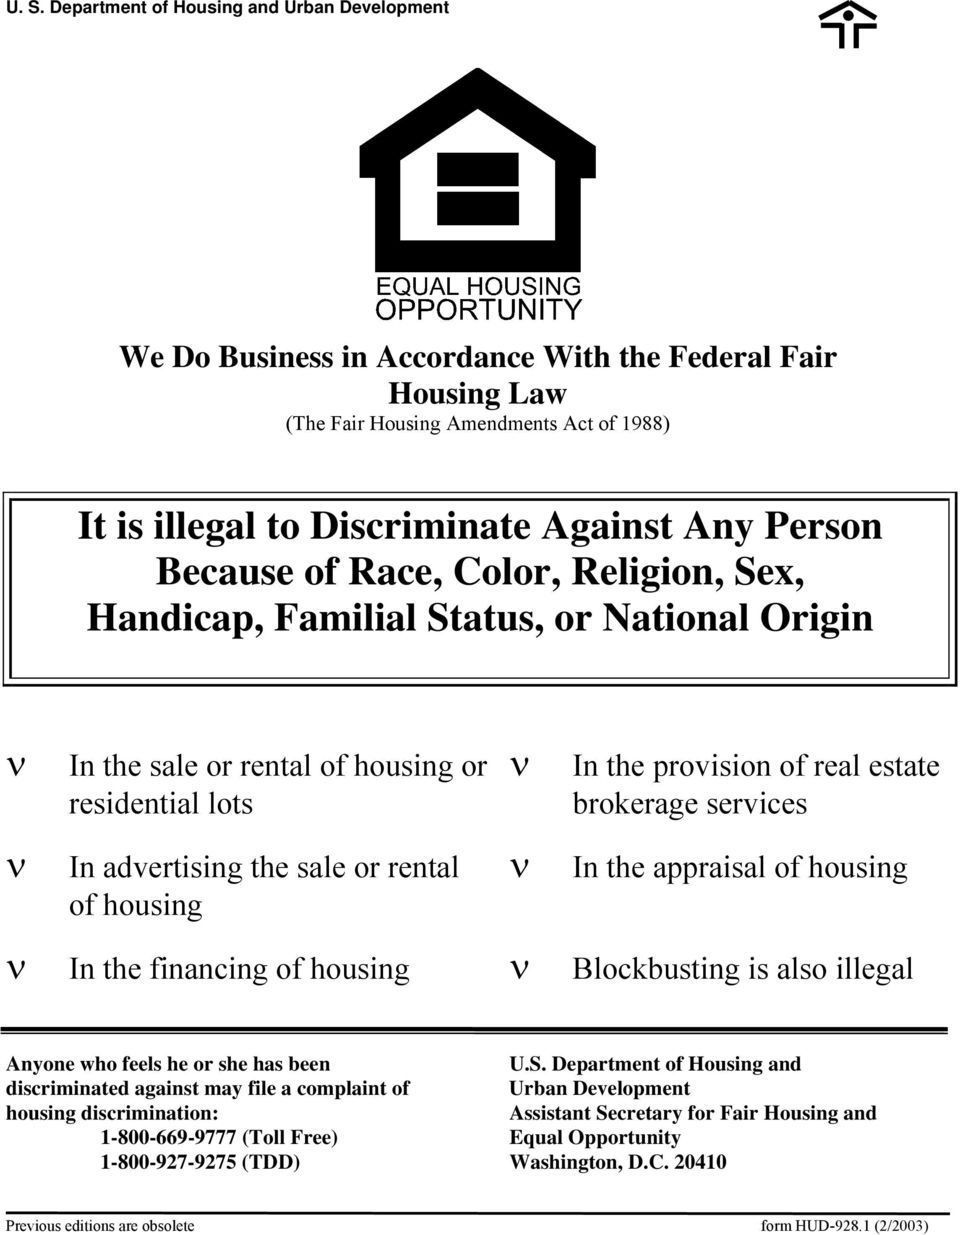 ν In advertising the sale or rental ν In the appraisal of housing of housing ν In the financing of housing ν Blockbusting is also illegal Anyone who feels he or she has been U.S.